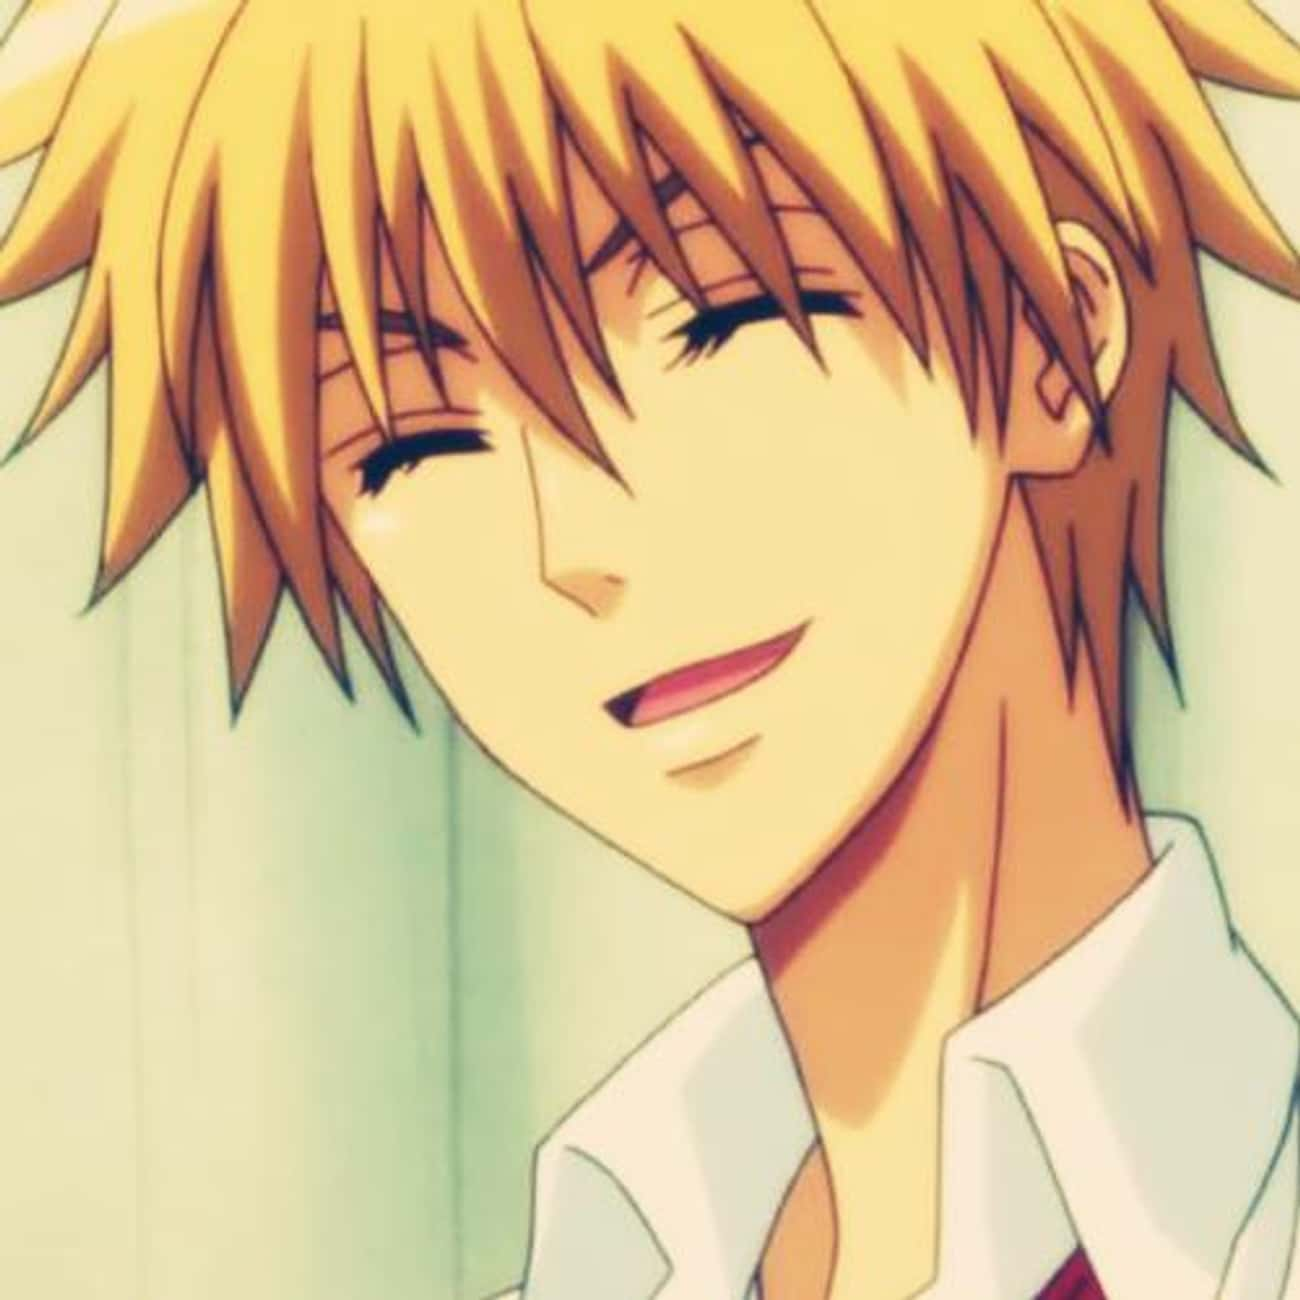 Usui Takumi is listed (or ranked) 3 on the list Ranking the 30+ Best Wealthy Anime Characters